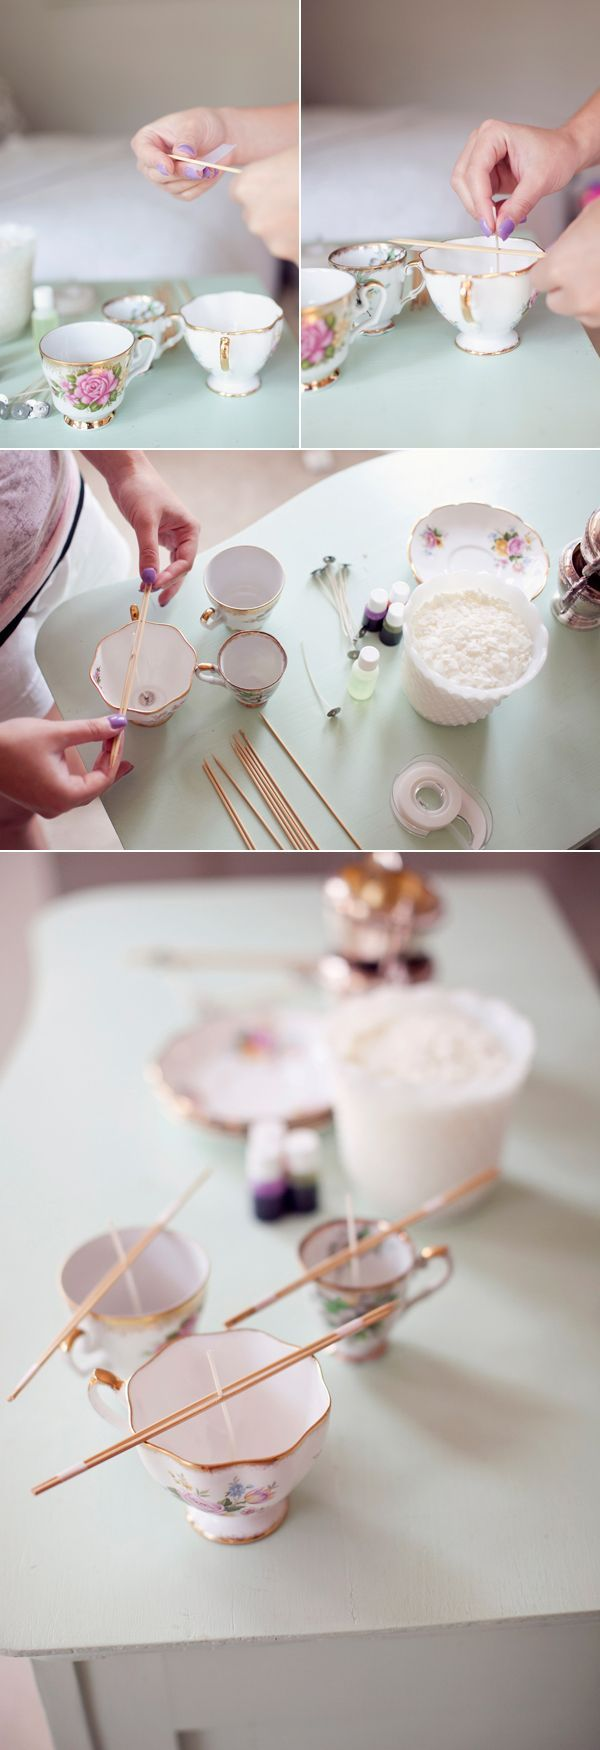 DIY Handmade Gift Ideas - Make candles in vintage teacups. LOVE this idea and so easy to do!